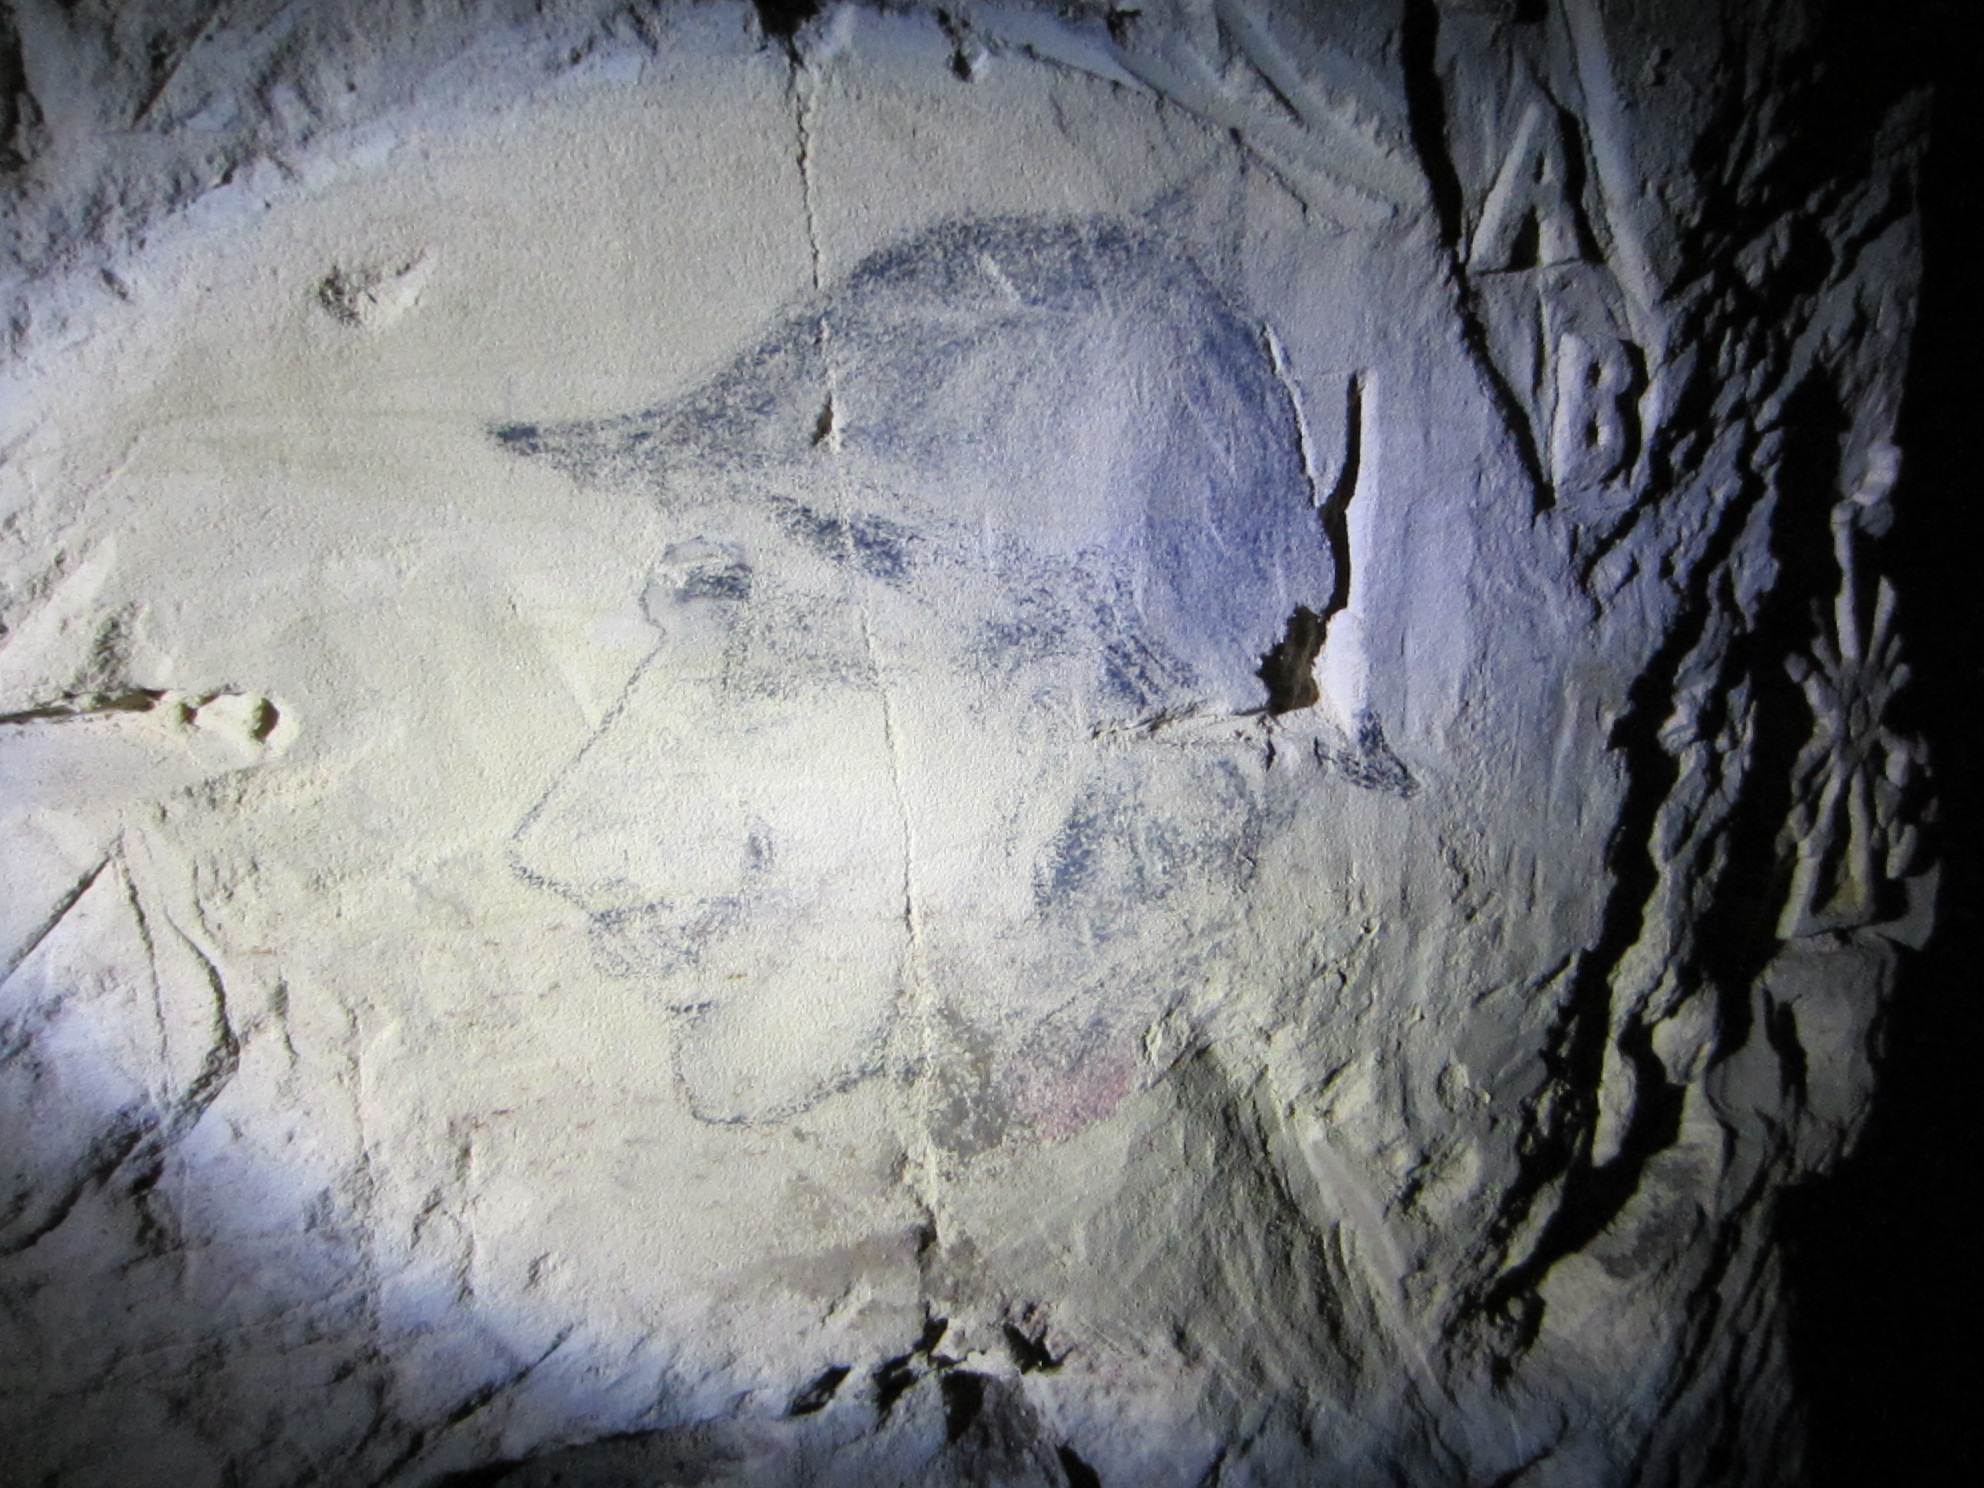 Portrait of a French soldier on a cave wall.